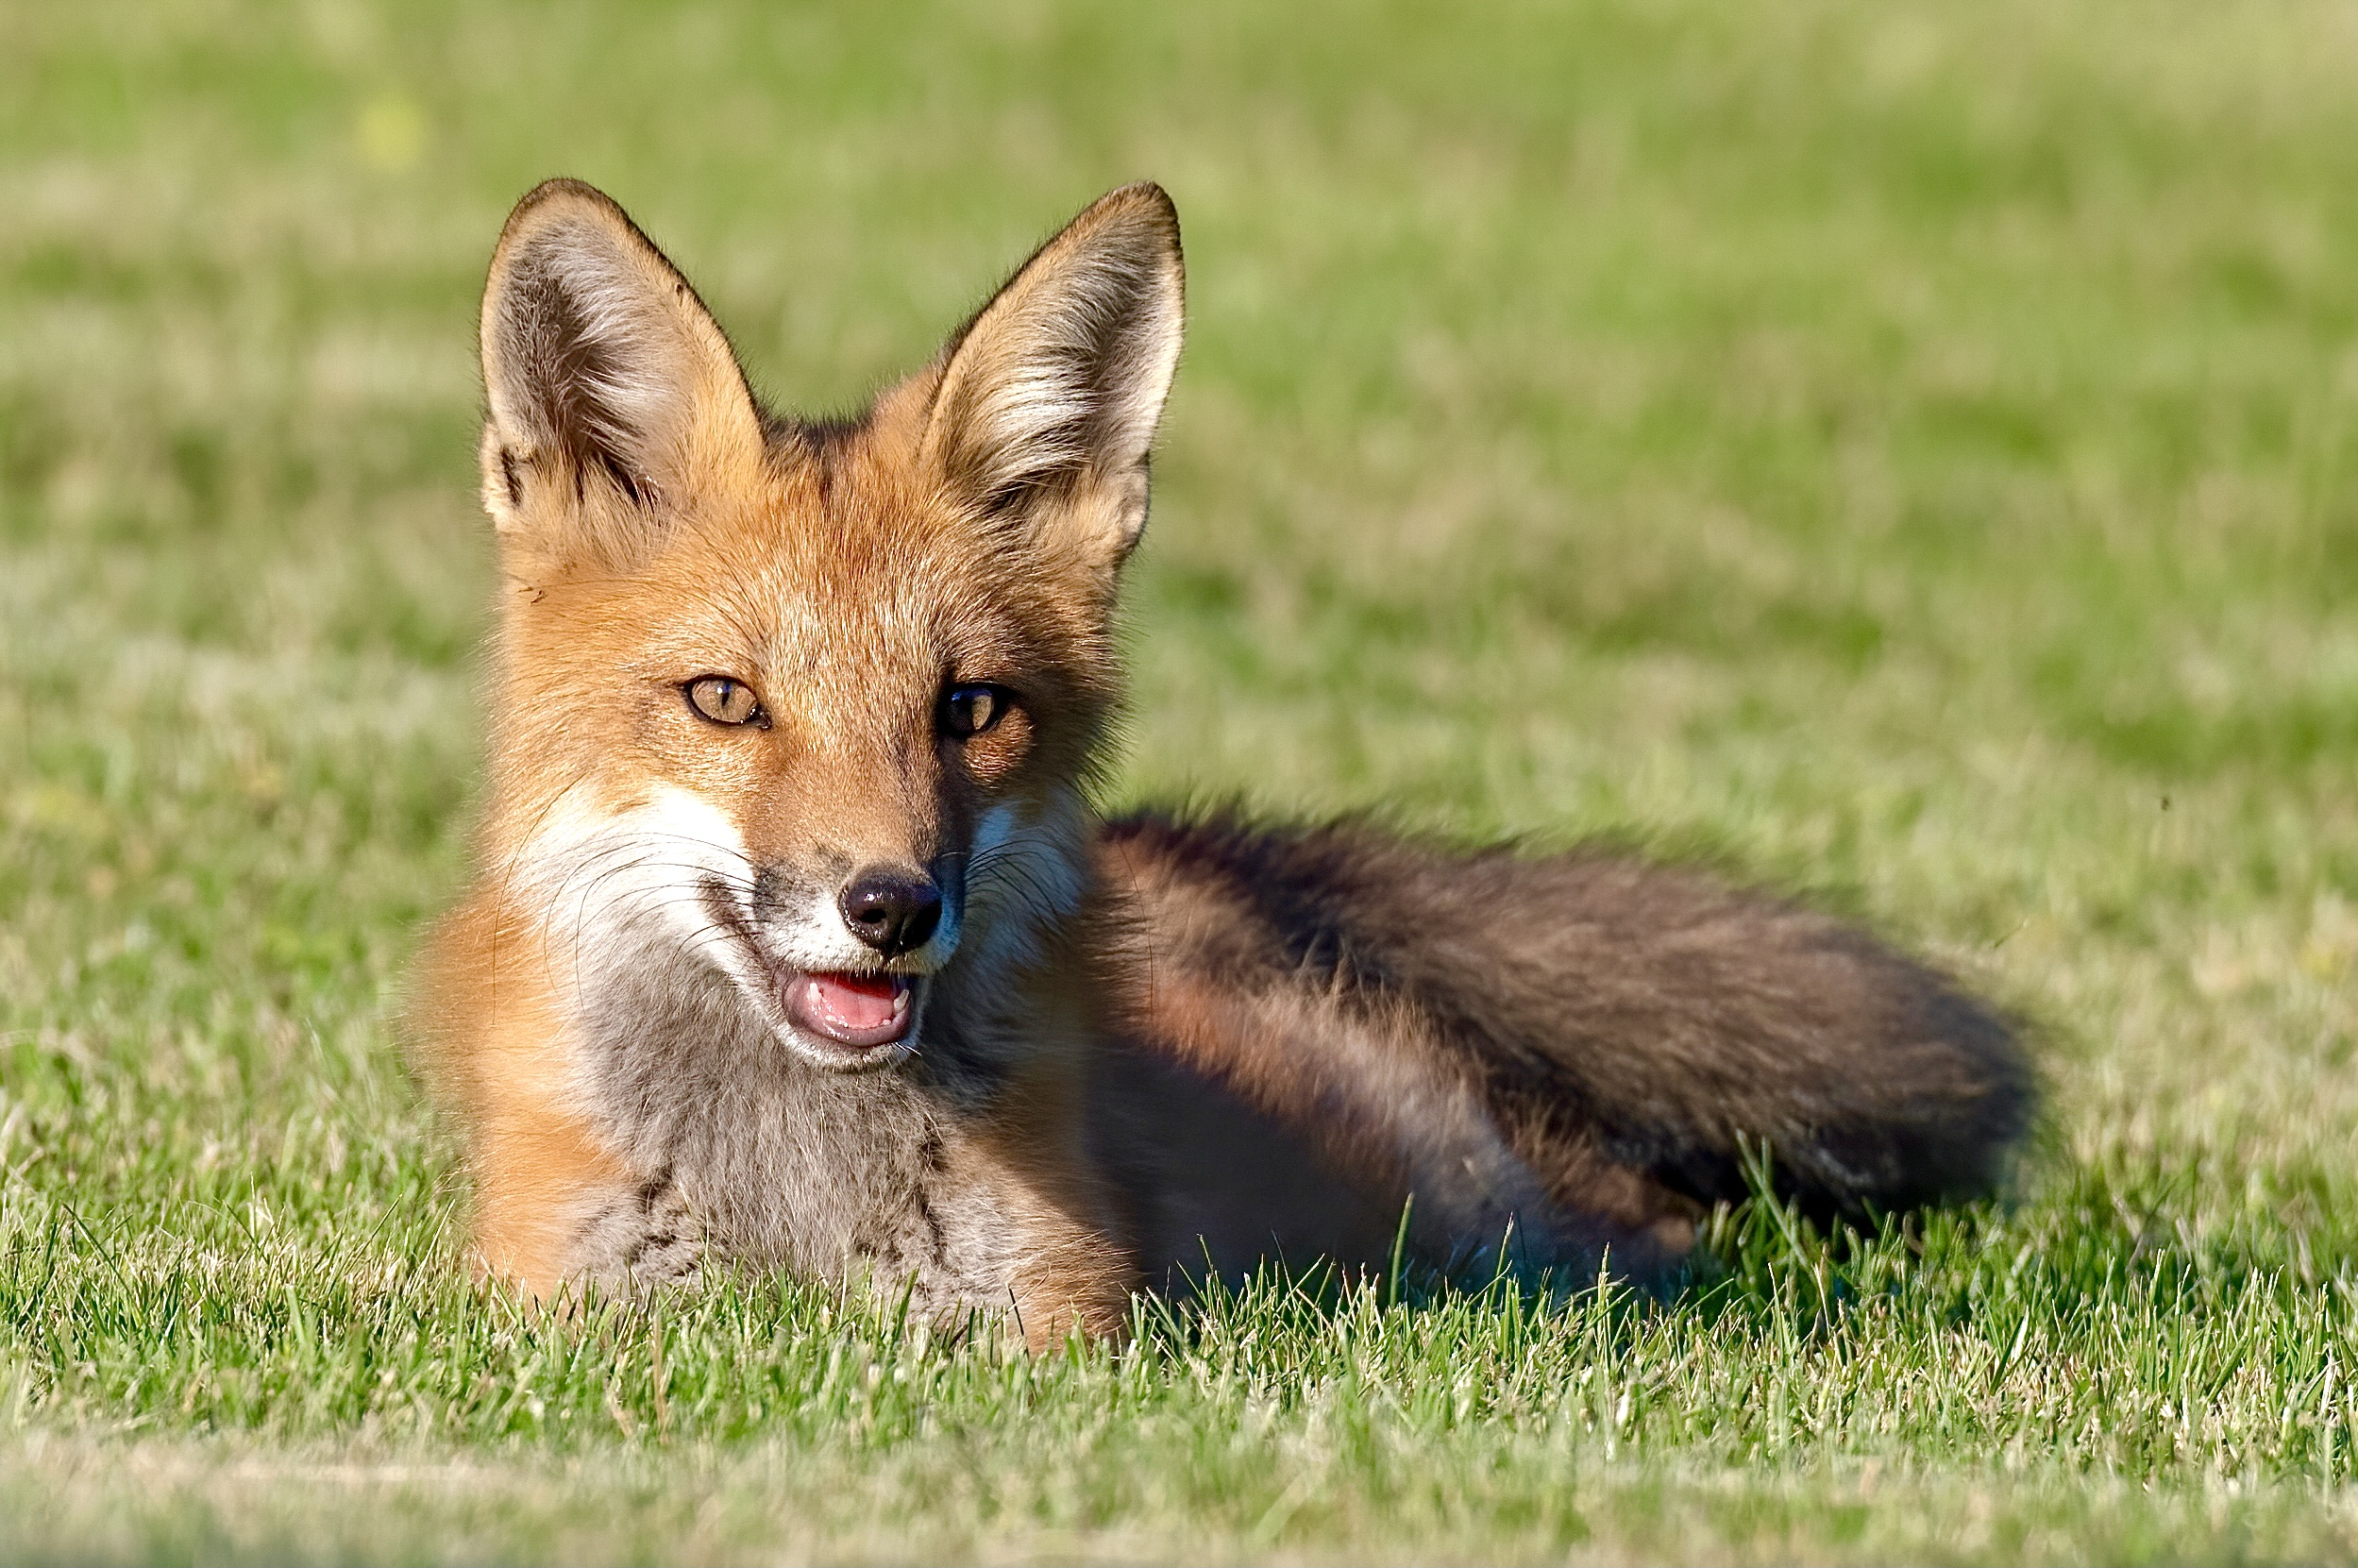 Victory! Israel Becomes The First Country In The World To Ban The Sale Of Fur - World Animal News